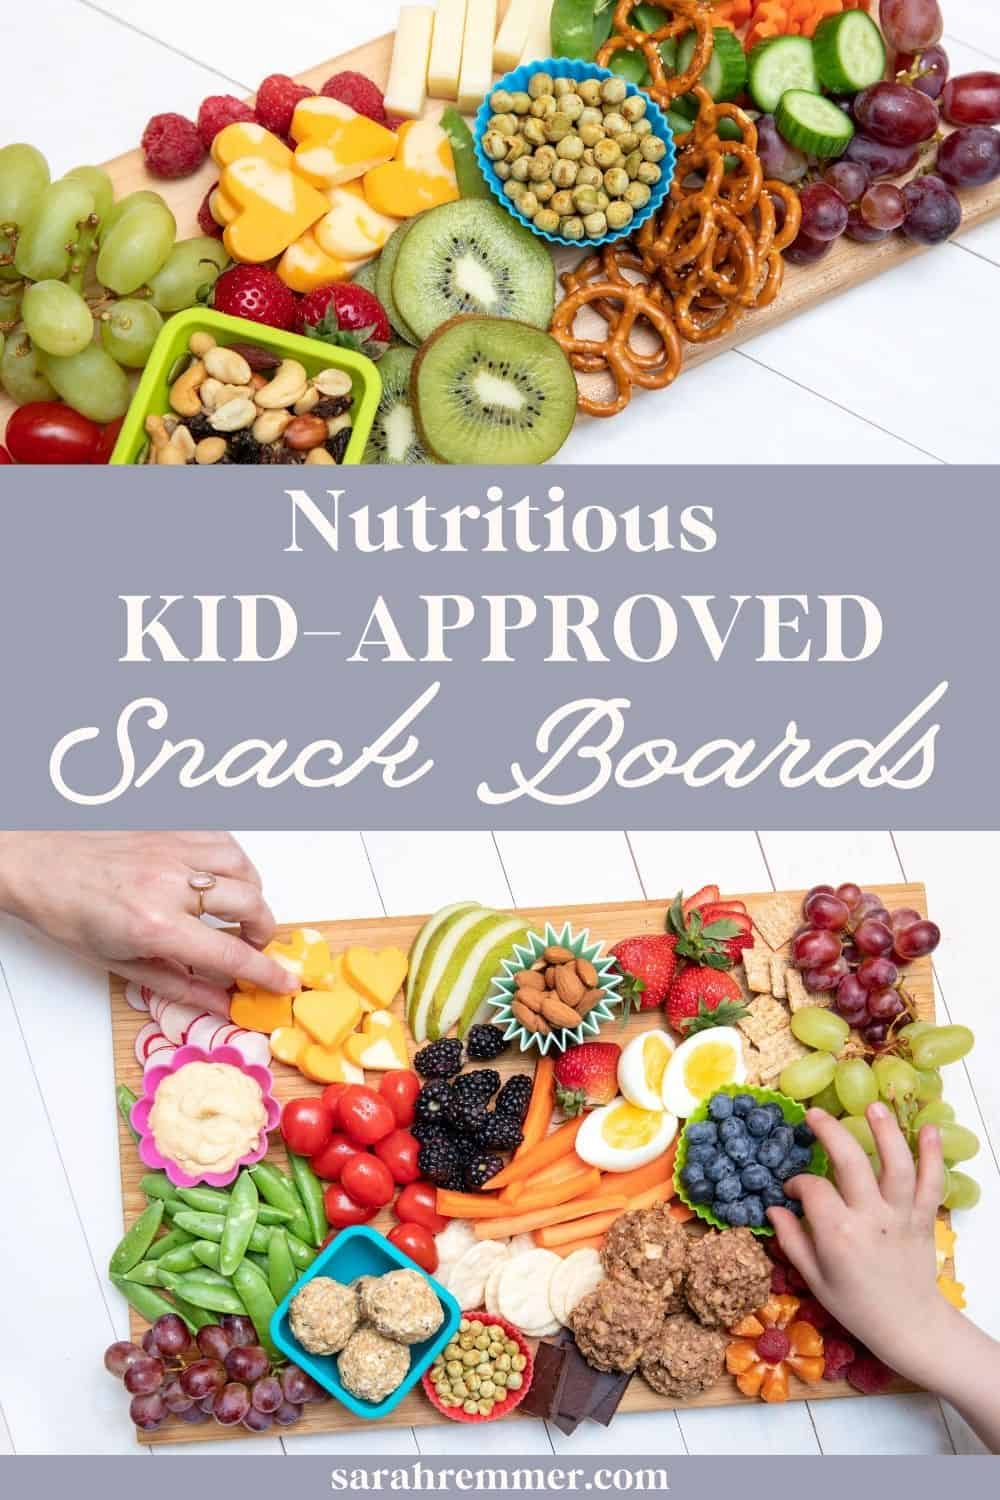 Want an easy and fun meal or snack idea that both parents and kids alike are guaranteed to love? Try making these nutritious snack boards!